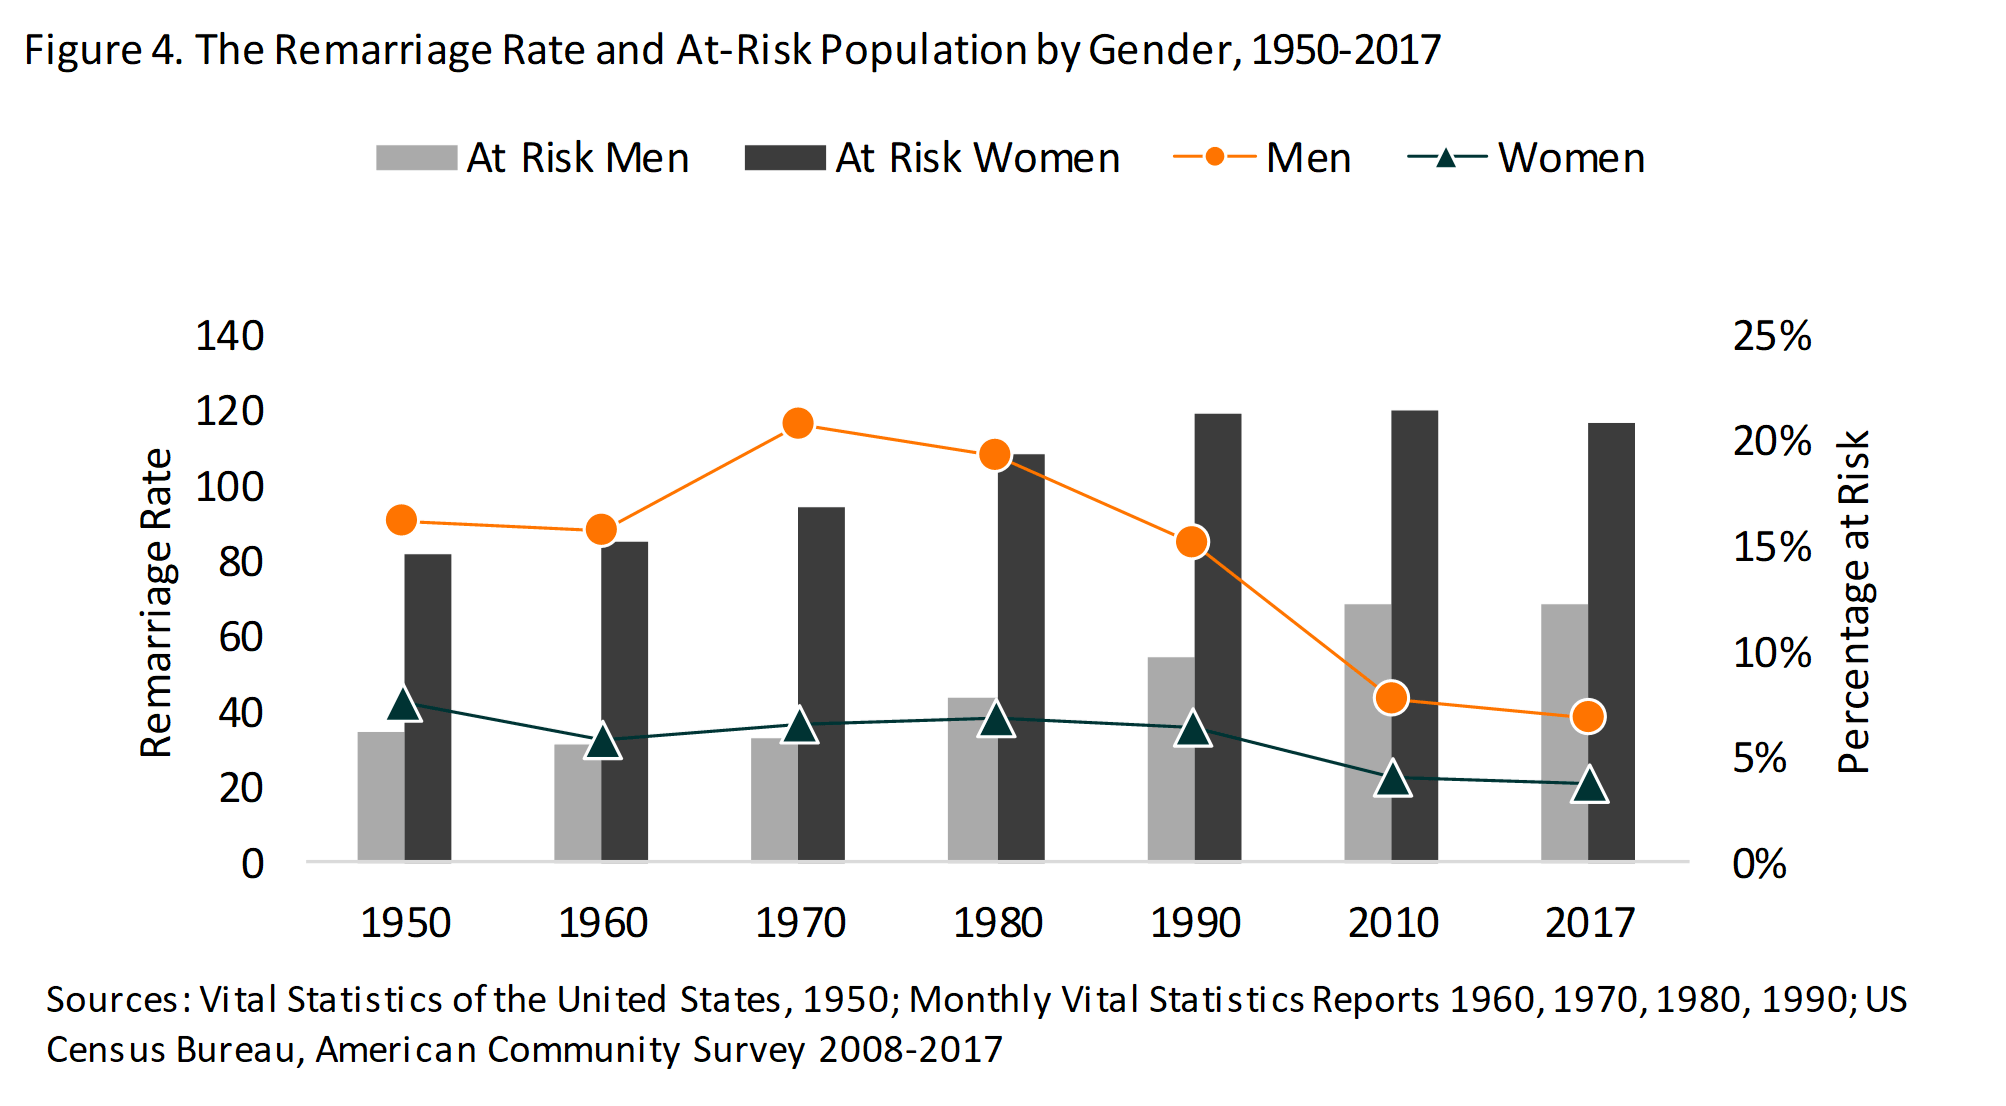 bar chart in shades of grey showing The Remarriage Rate and At-Risk Population by Gender, 1950-2017